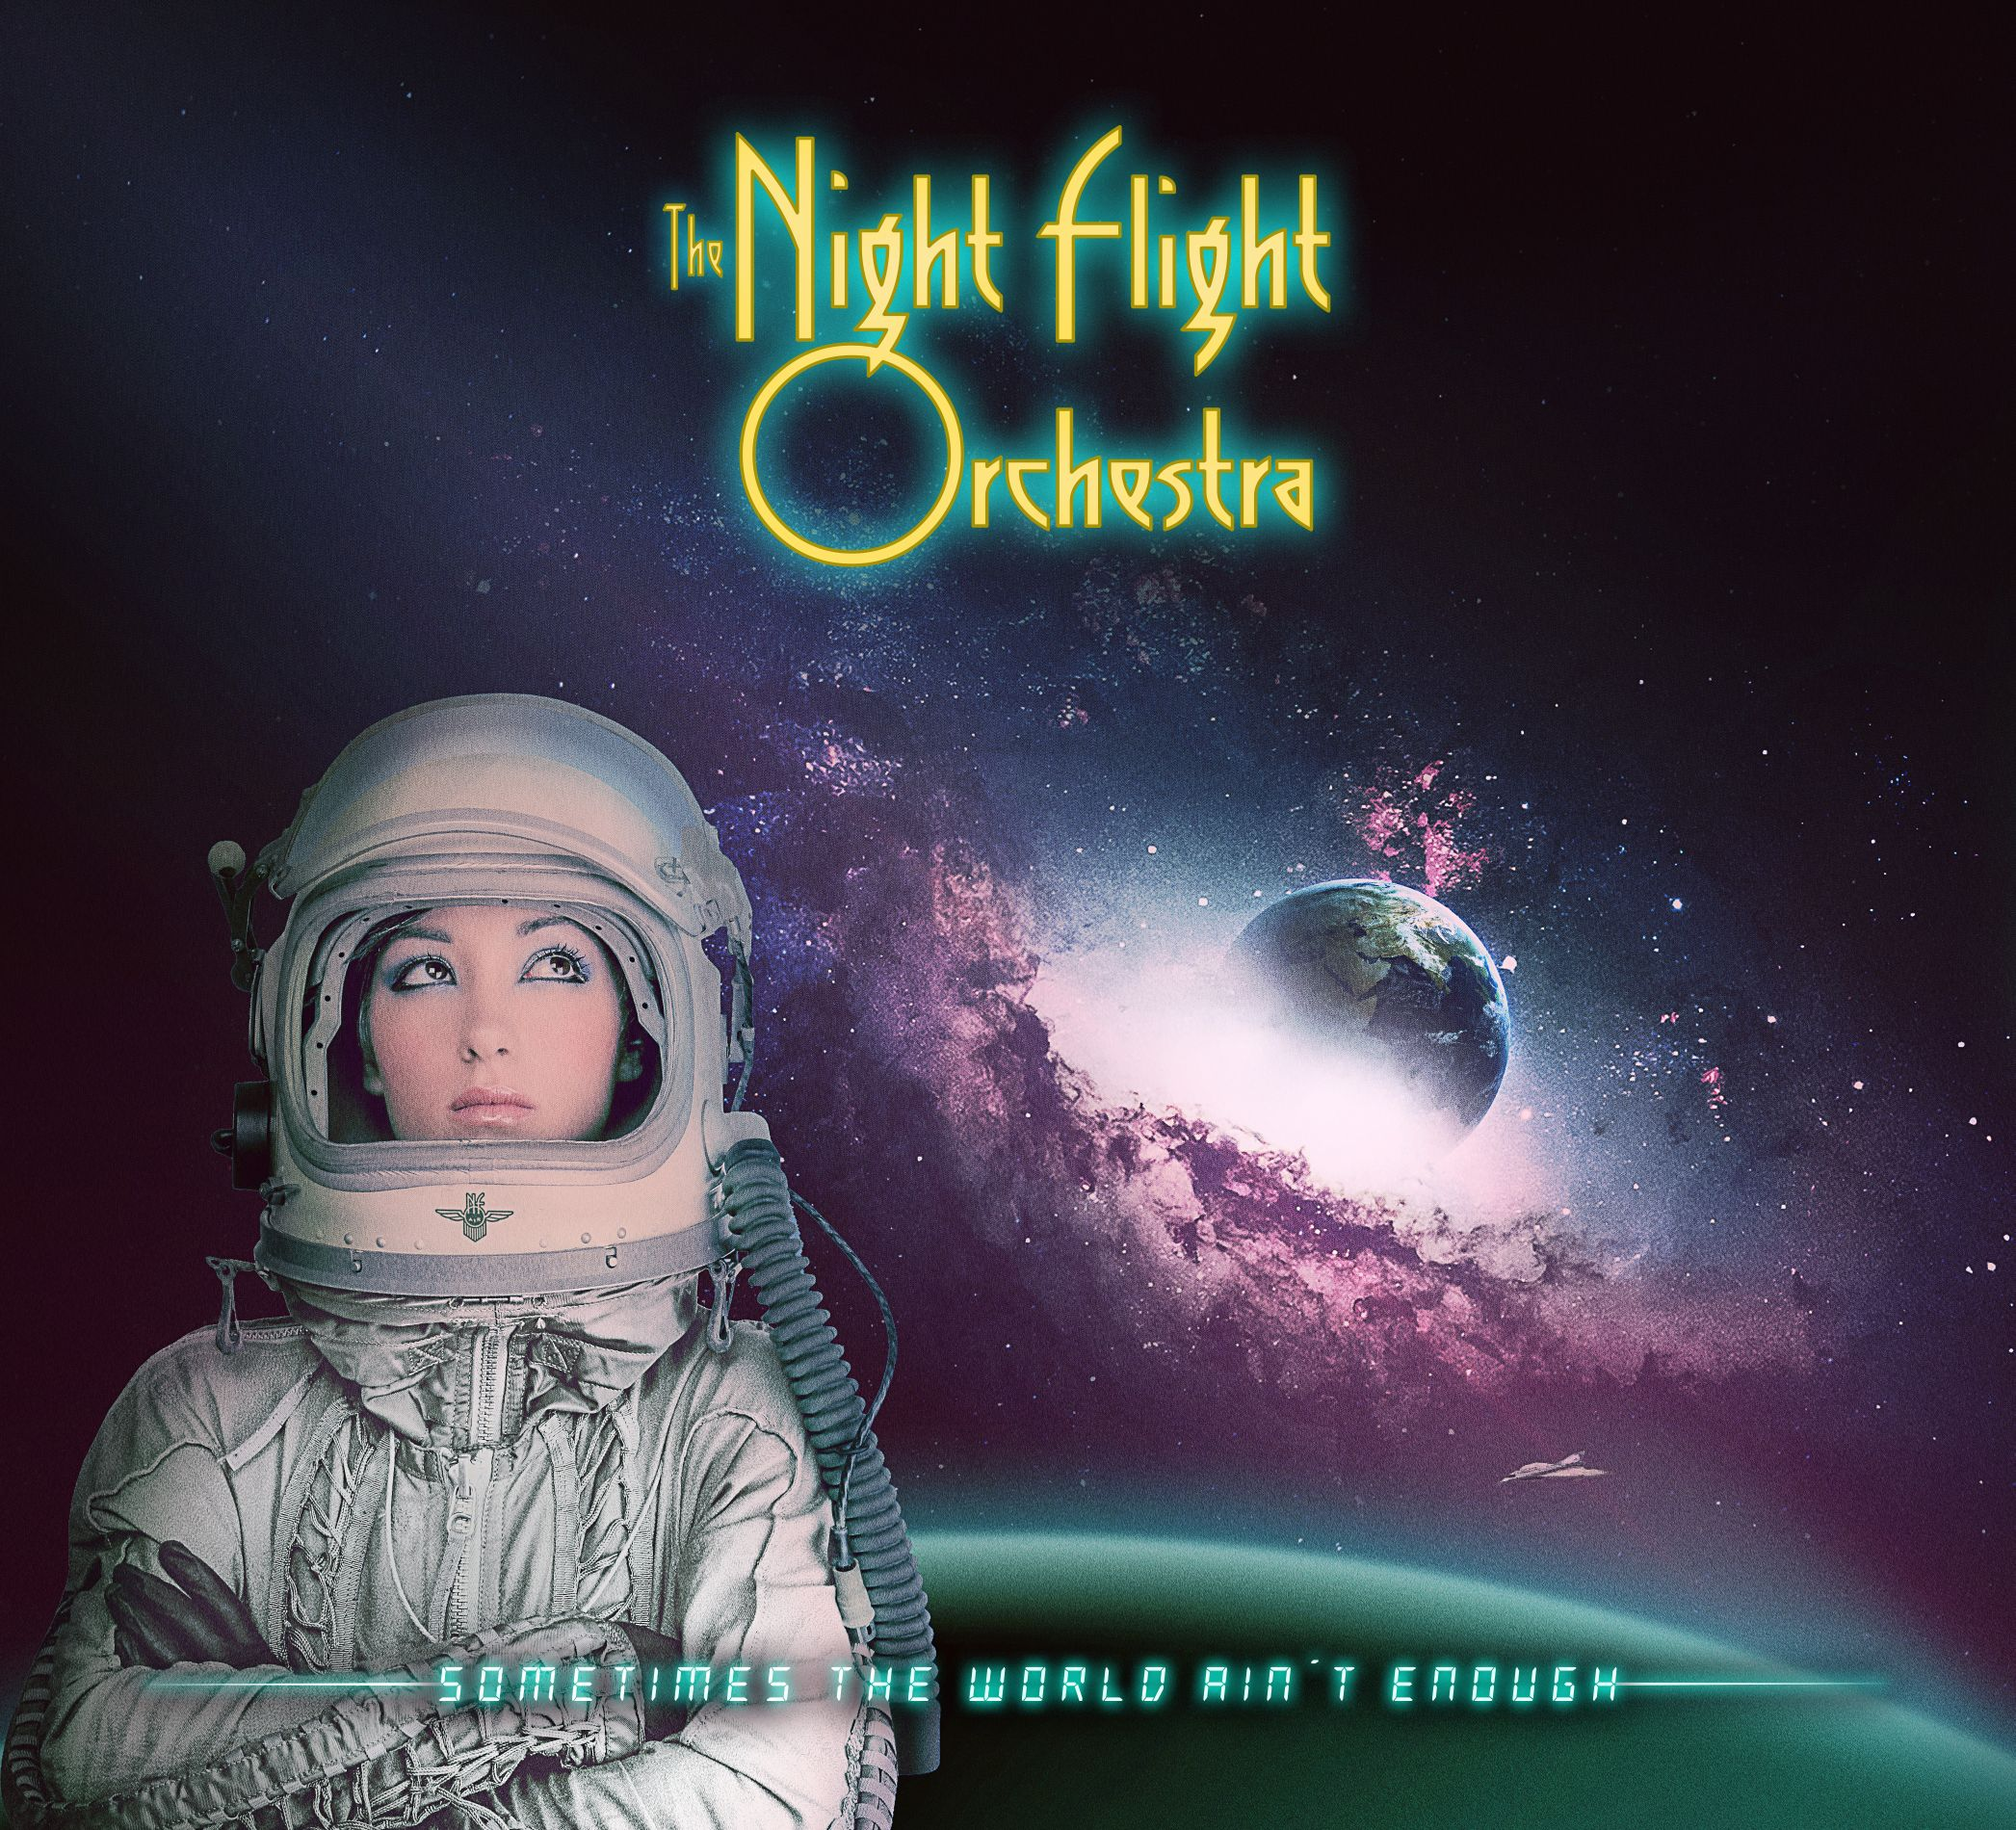 The Nightflight Orchestra - Sometimes The World Ain't Enough